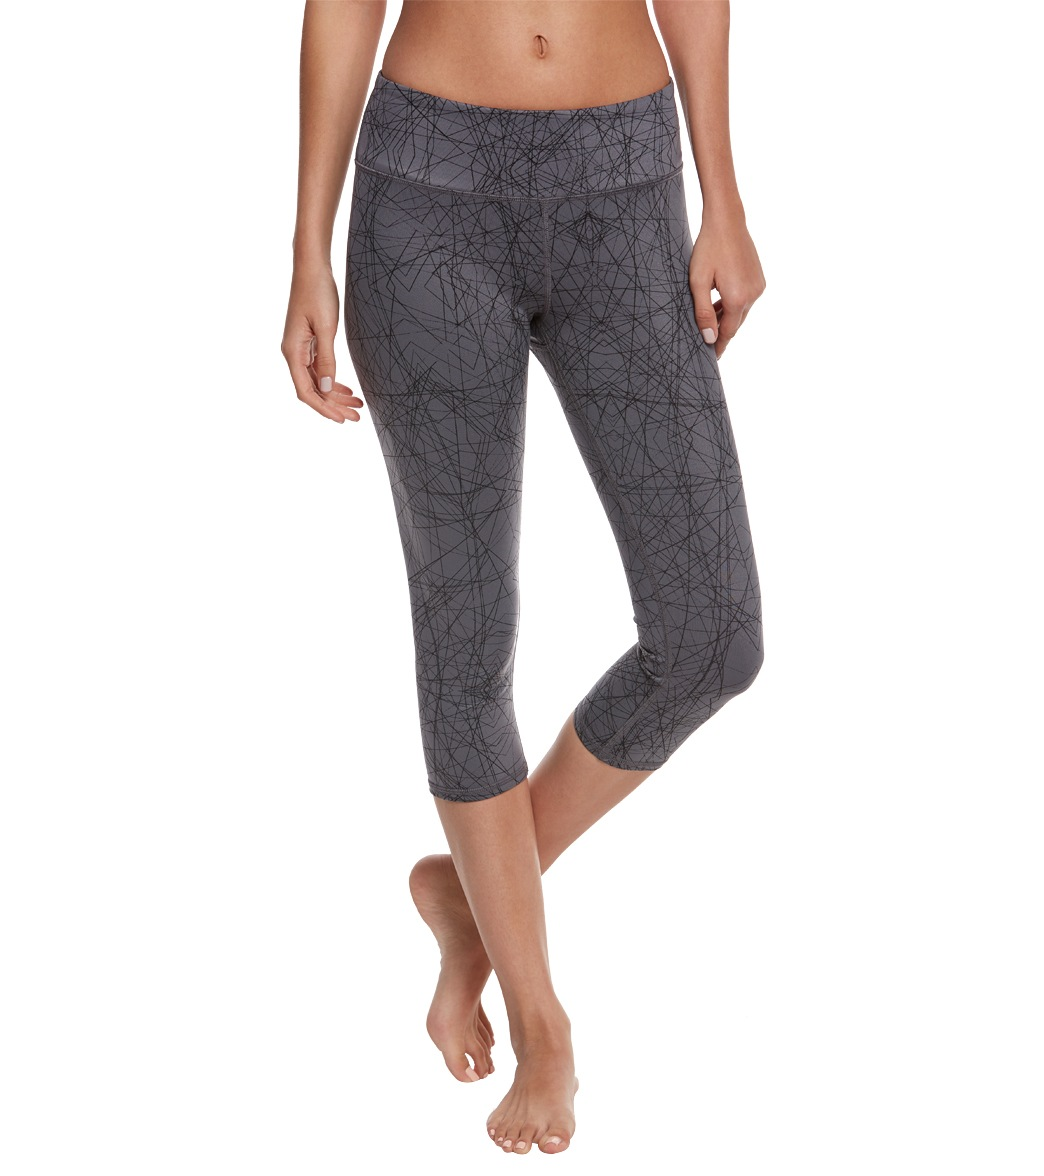 Alo Yoga Printed Airbrush Yoga Capris at YogaOutlet.com - Free ...